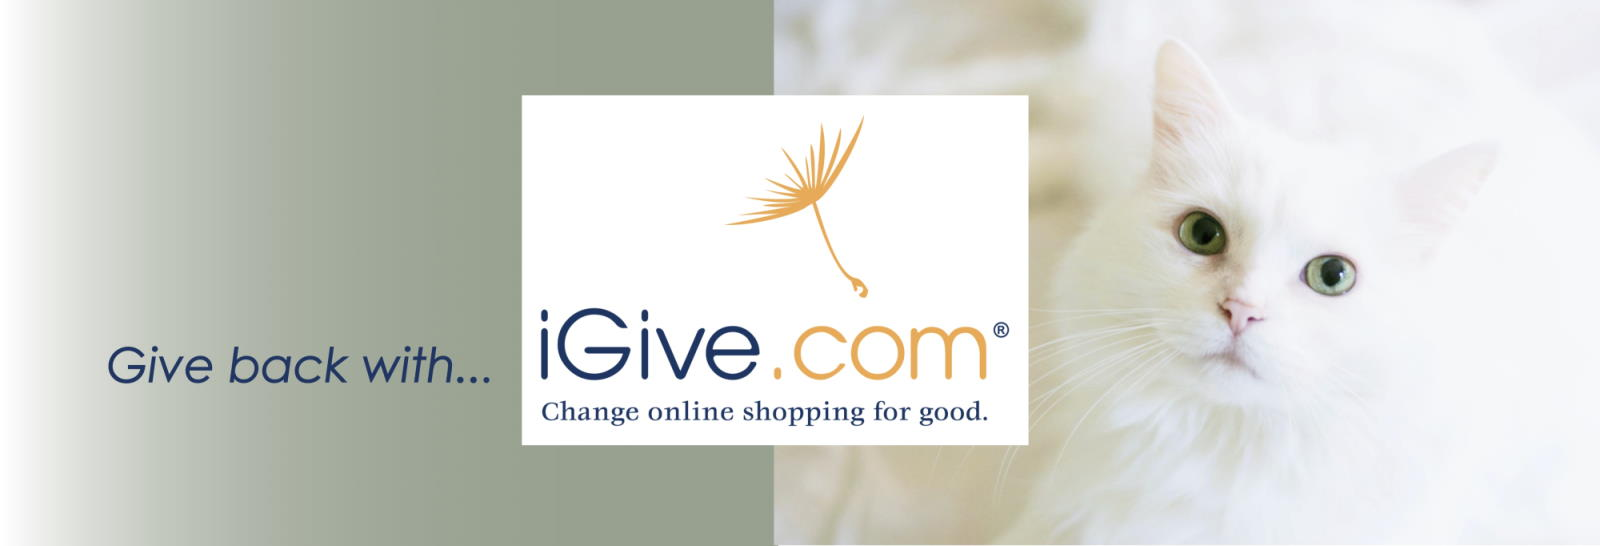 give back with igive.com online shopping